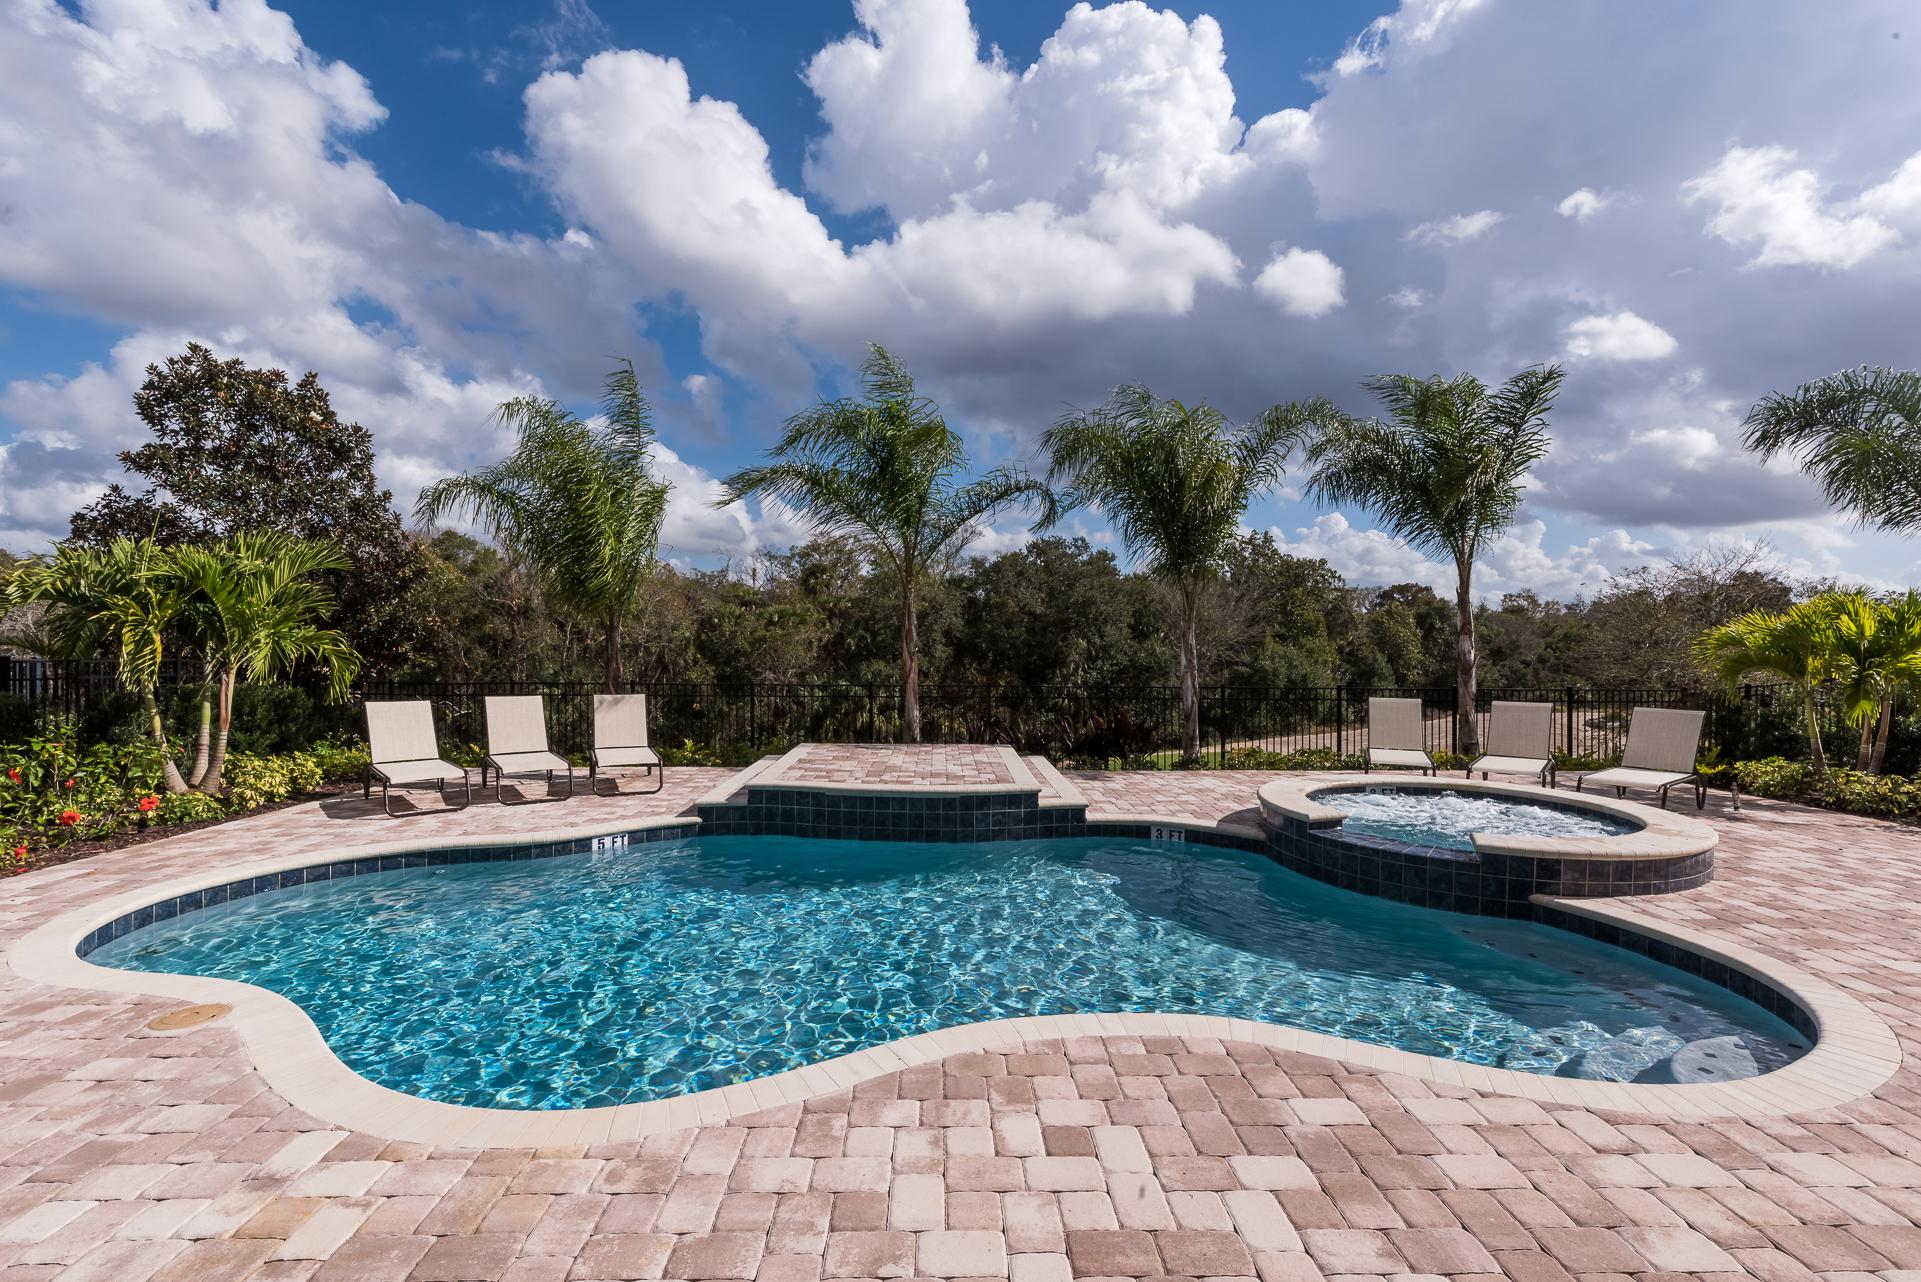 Spacious Oasis with Large Pool Deck at Reunion